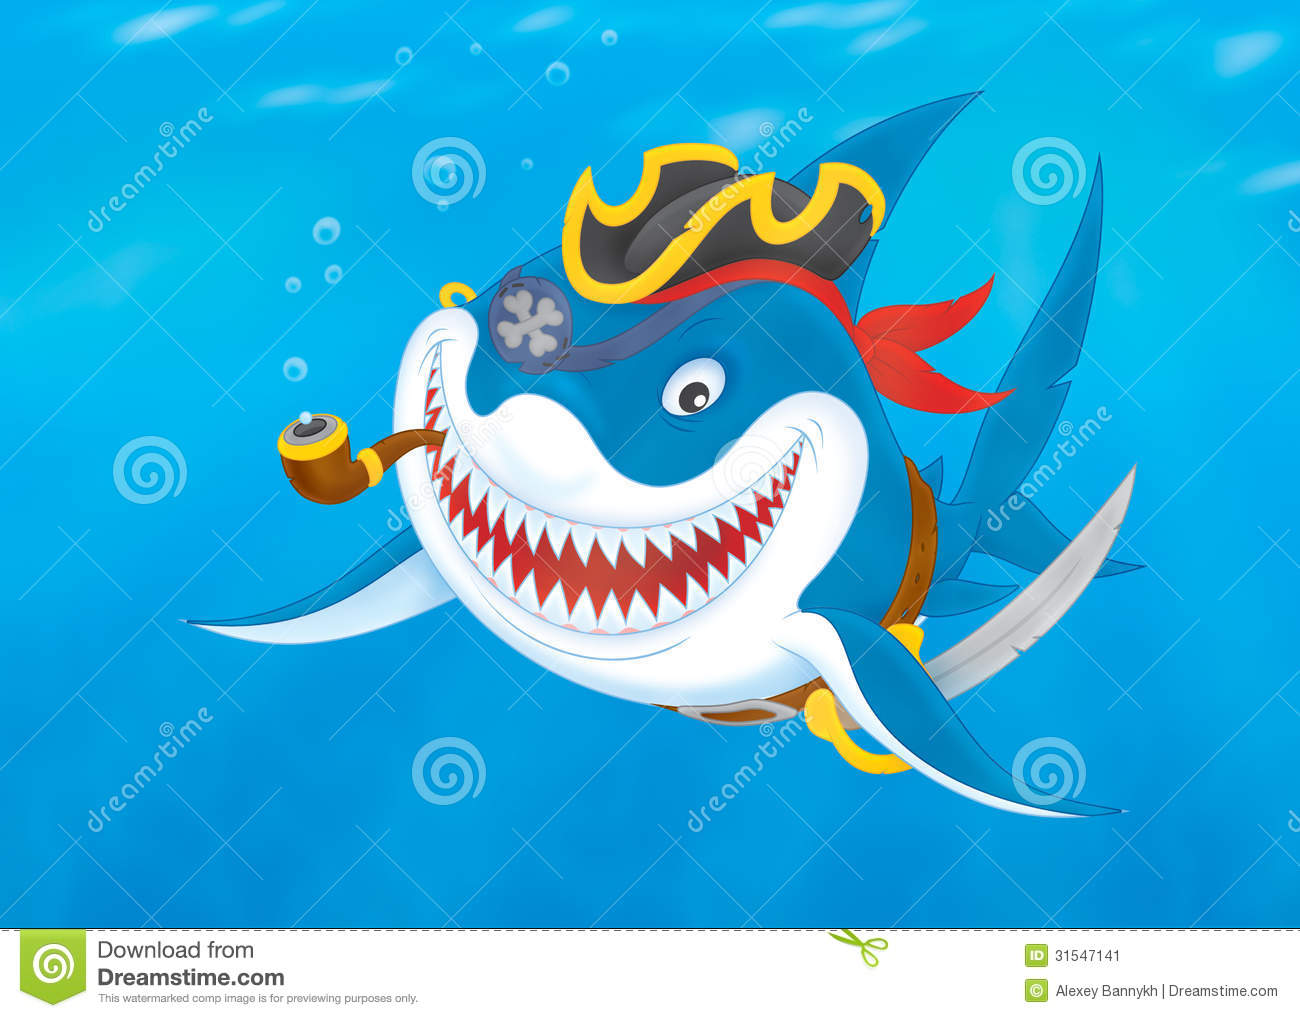 How To Filibuster >> Shark Pirate Stock Image - Image: 31547141